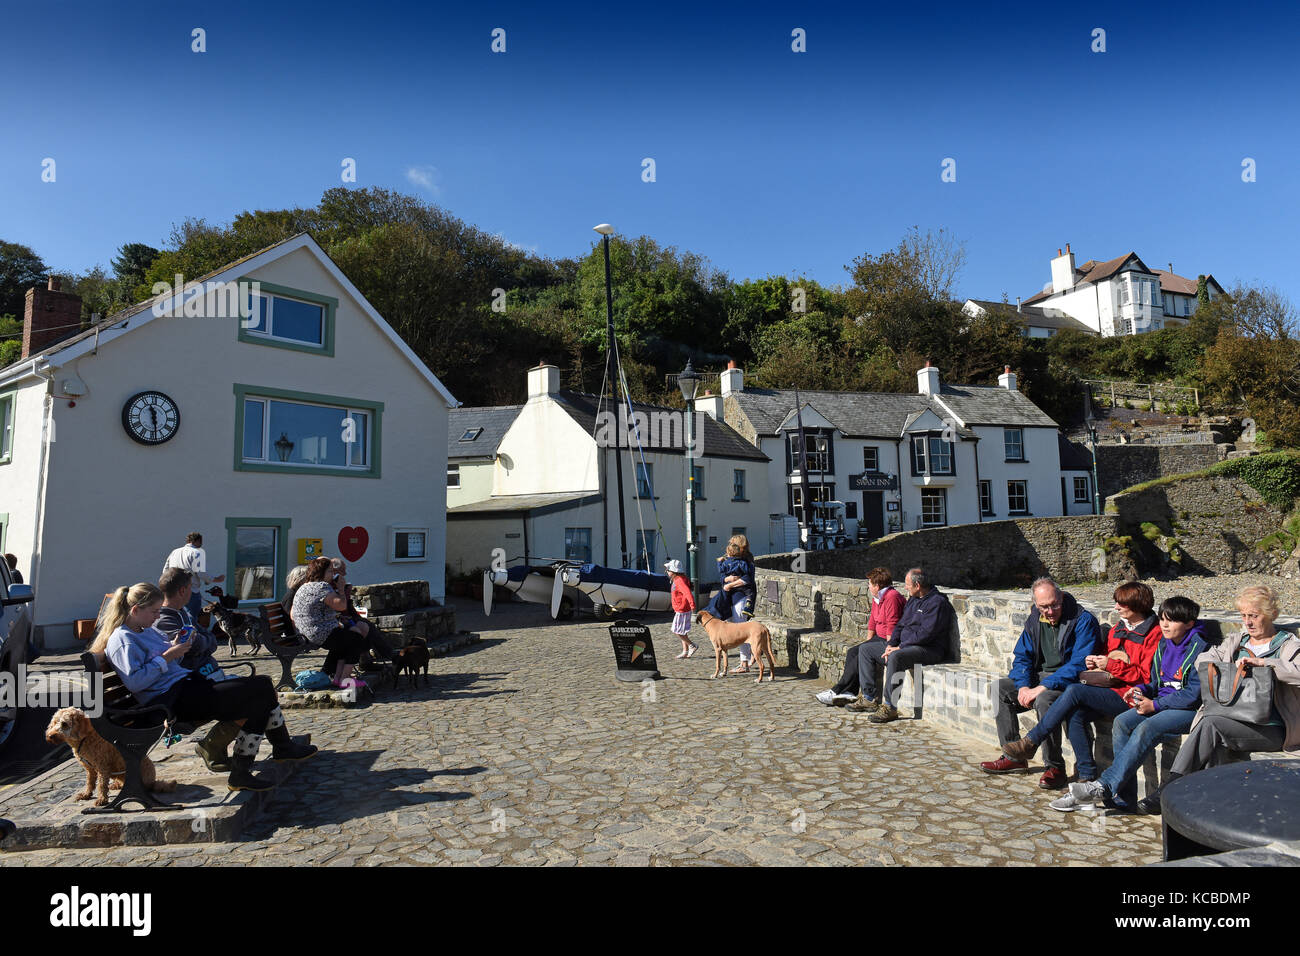 Little Haven in Pembrokeshire, West Wales, Uk - Stock Image